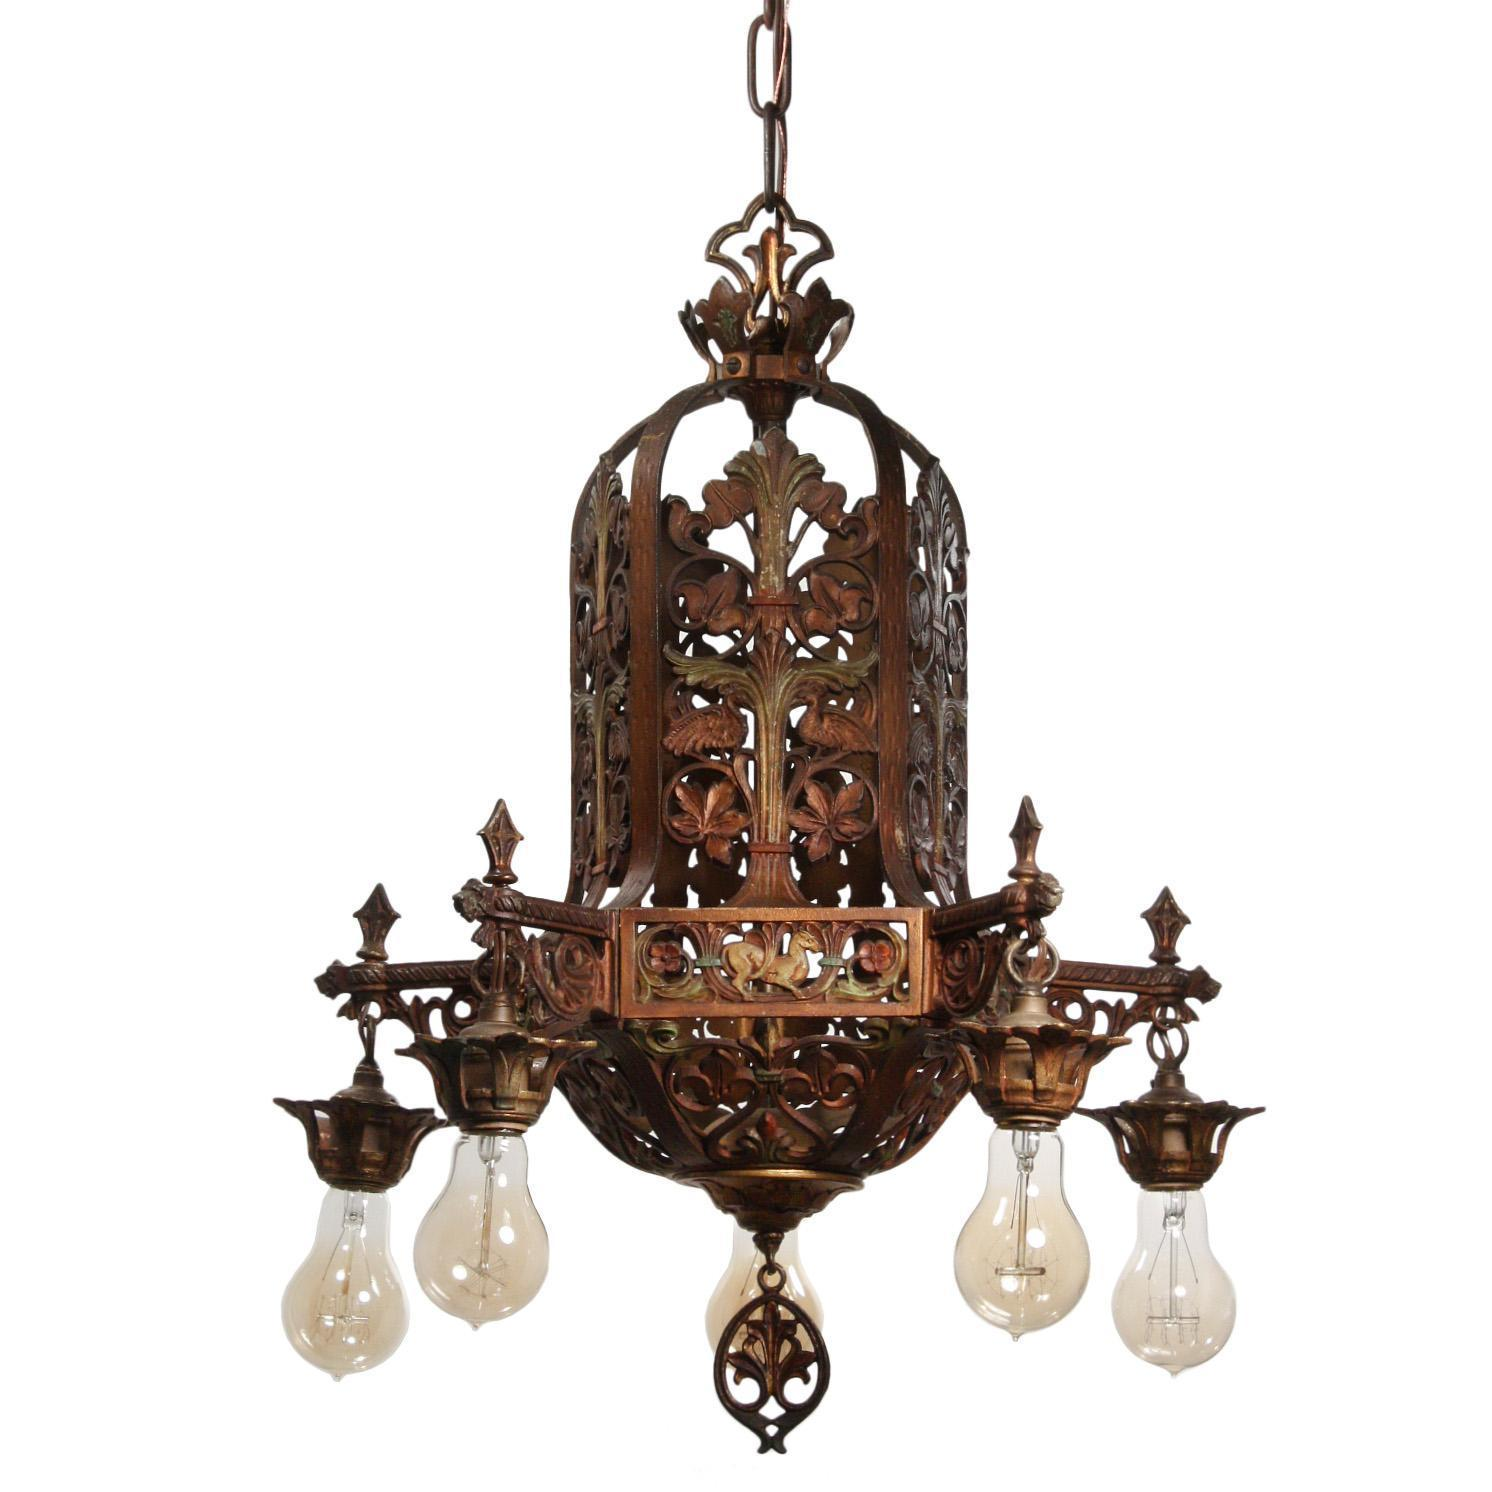 Antique Figural Chandelier with Original Polychrome, Fleur-De-Lis